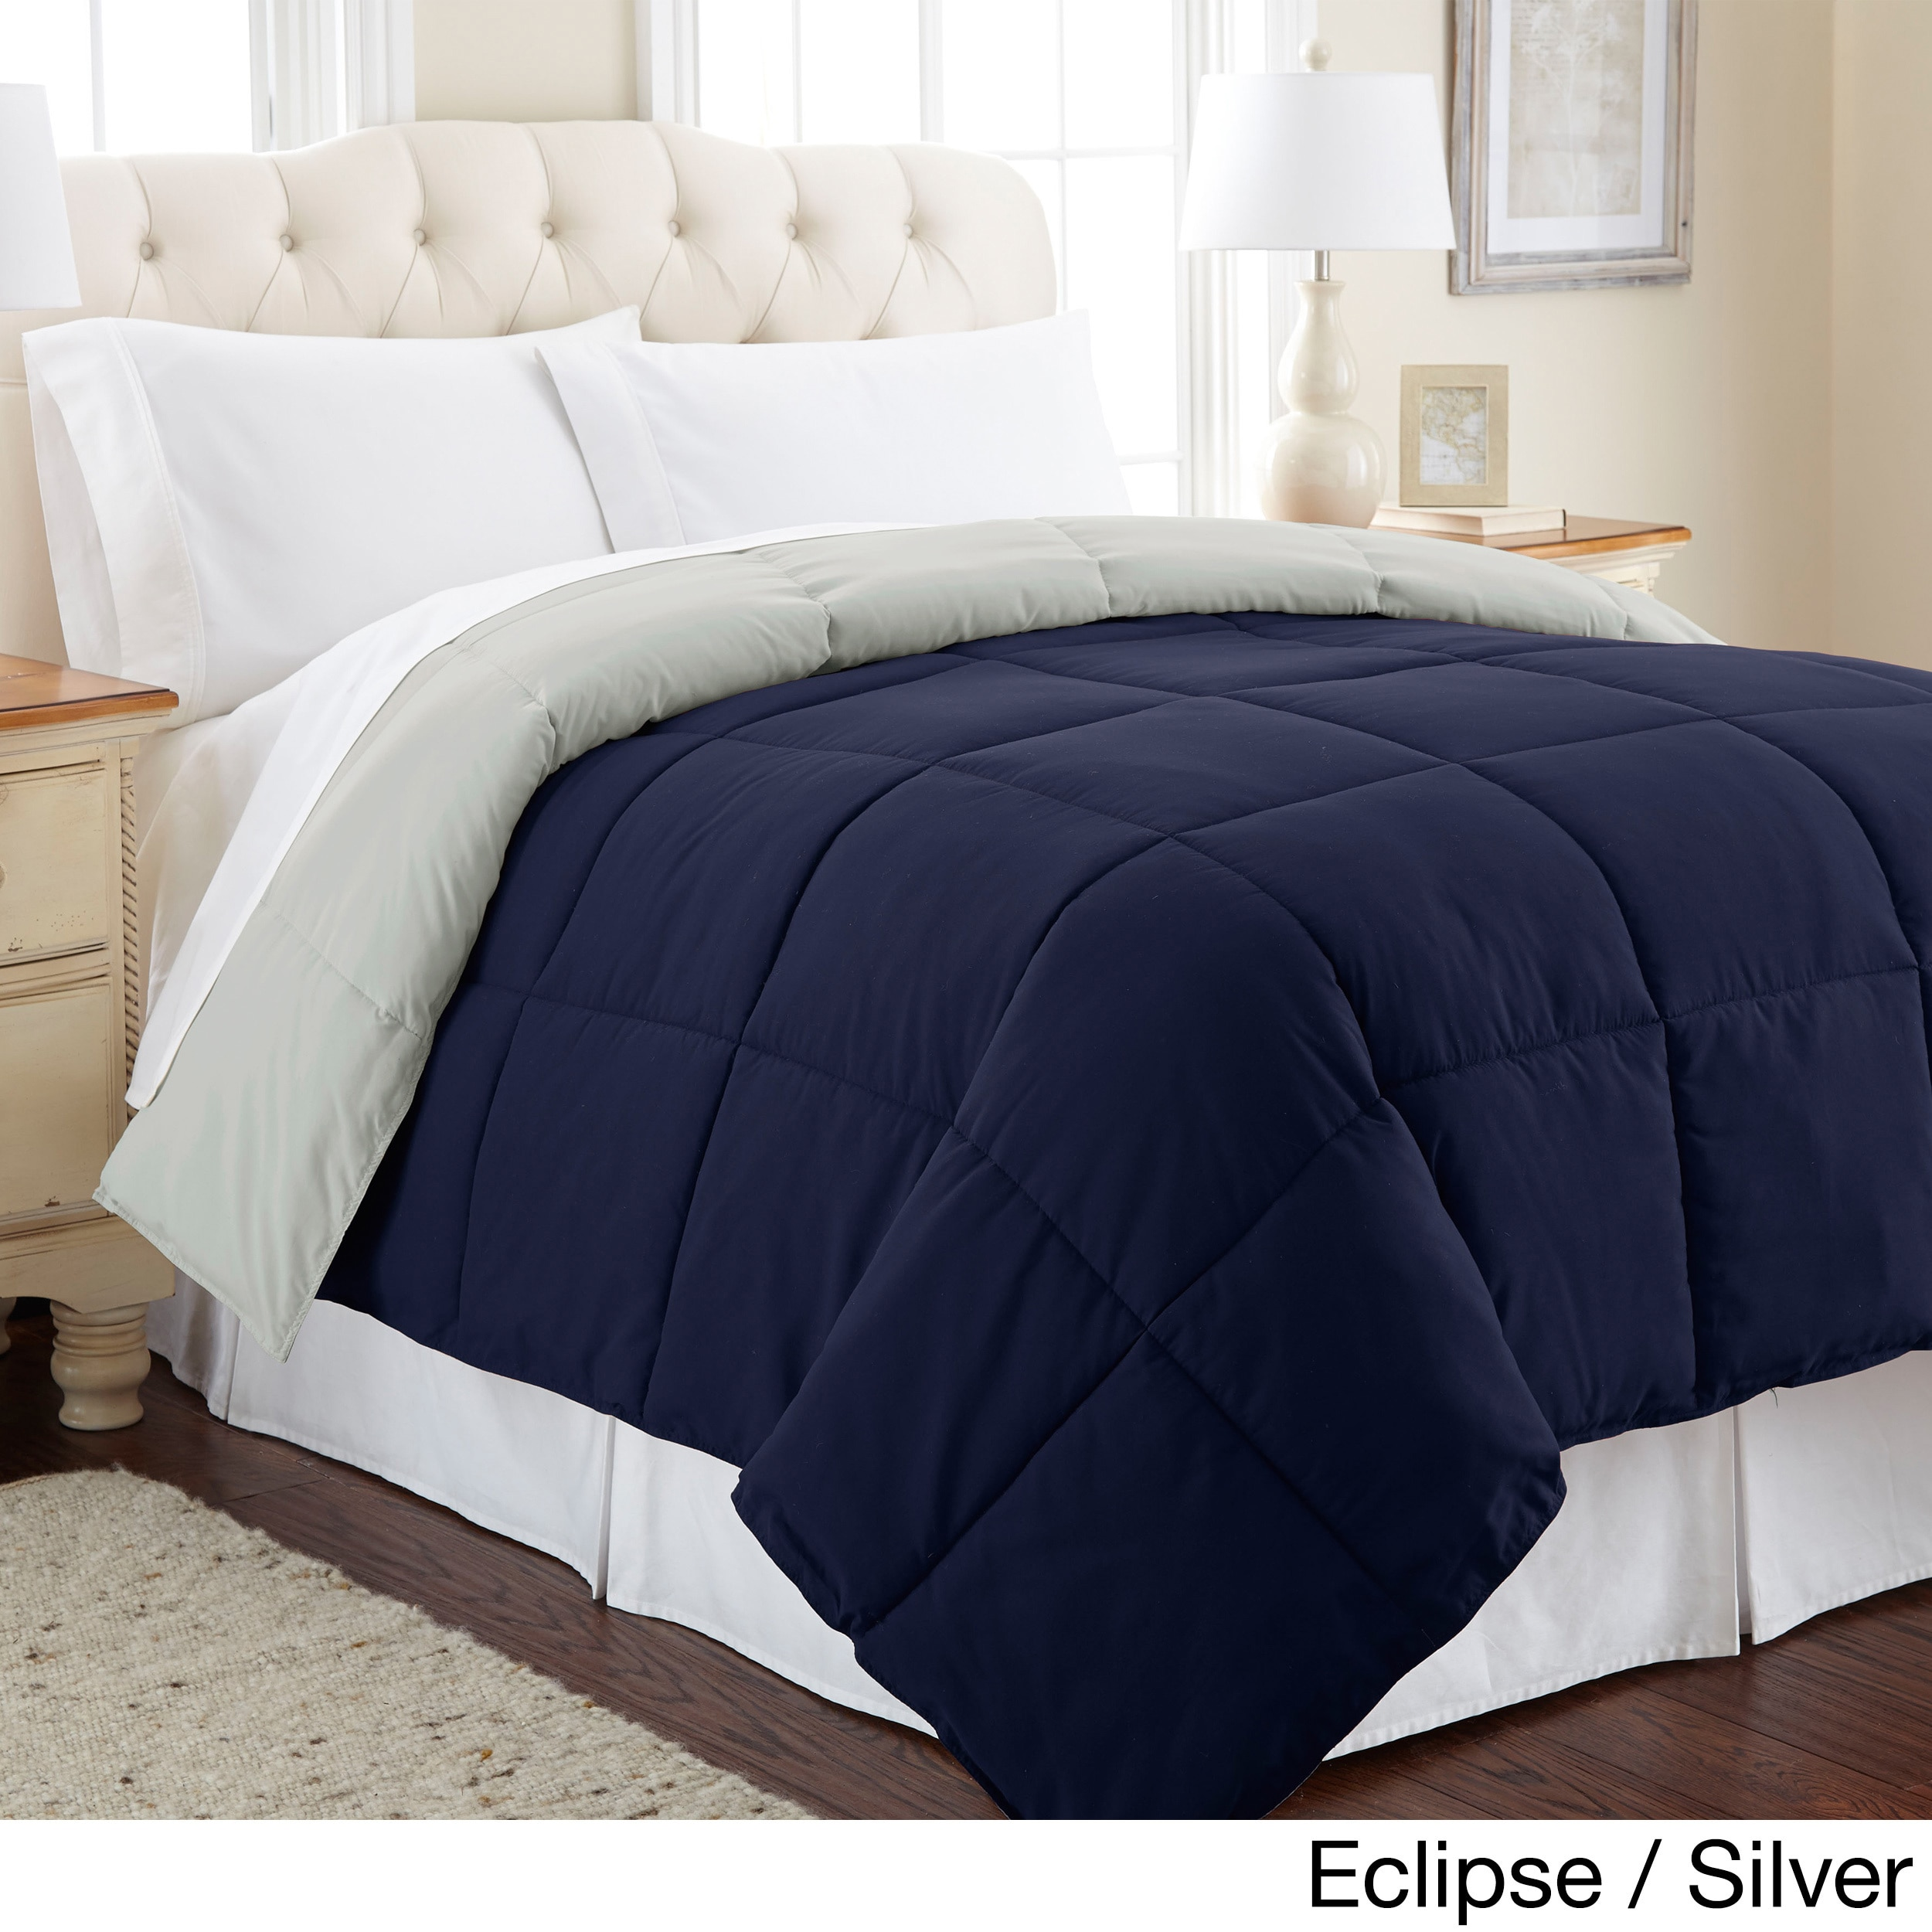 All Season Reversible Down Alternative Microfiber Comforter Eclipse/Silver - Twin